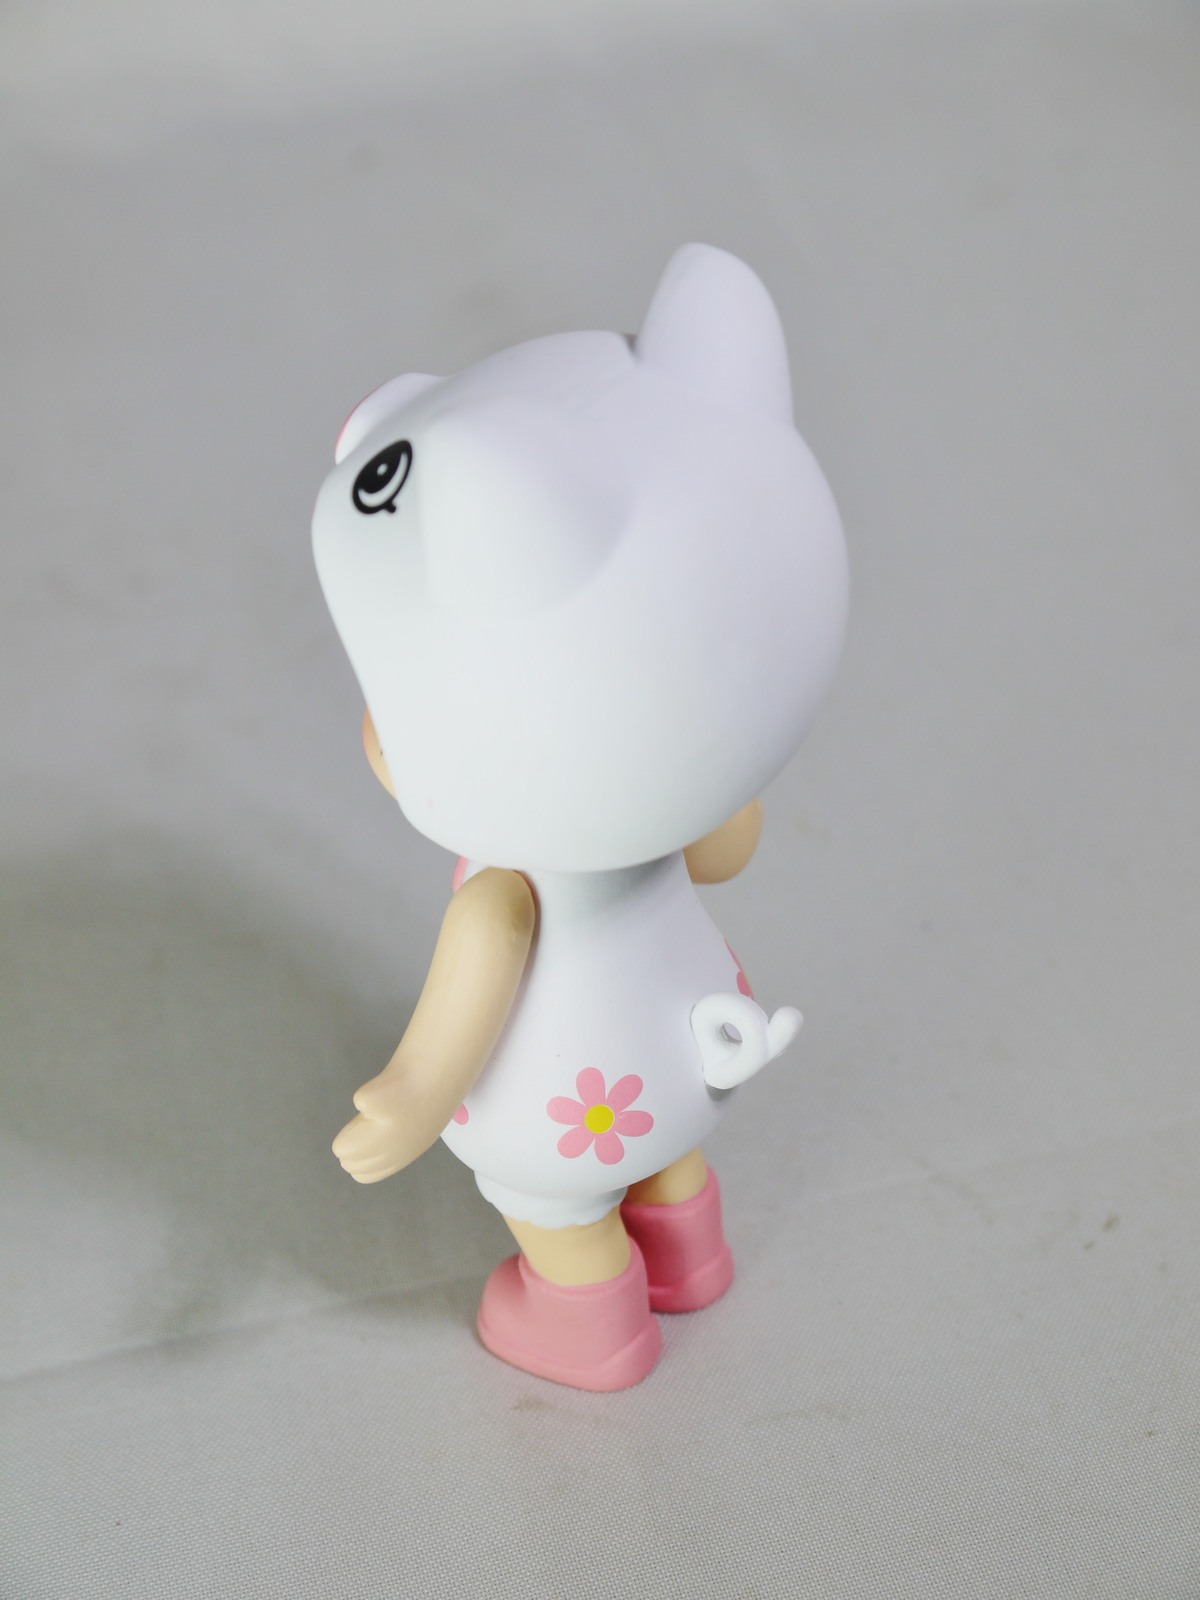 POP MART Kennyswork BLOCK Little Molly Chinese Zodiac Pig White Minifigure